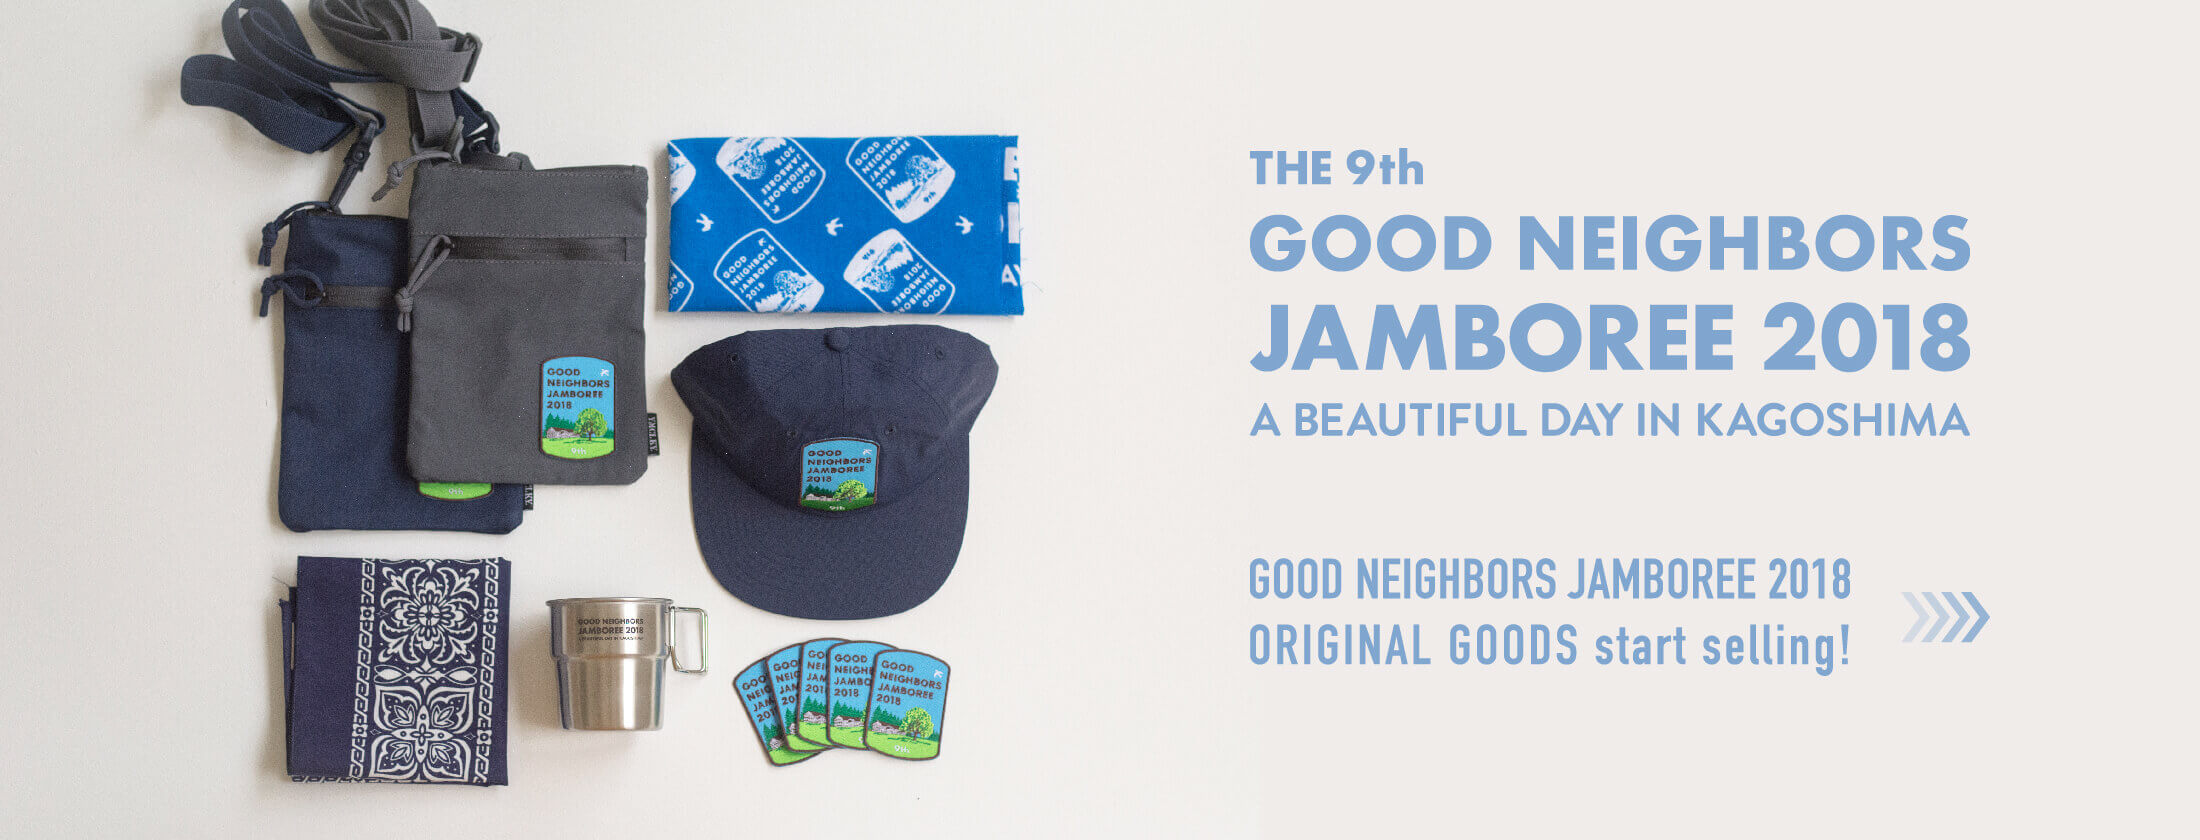 GOOD NEIGHBORS JAMBOREE 2018 ORIGINAL GOODS 販売中